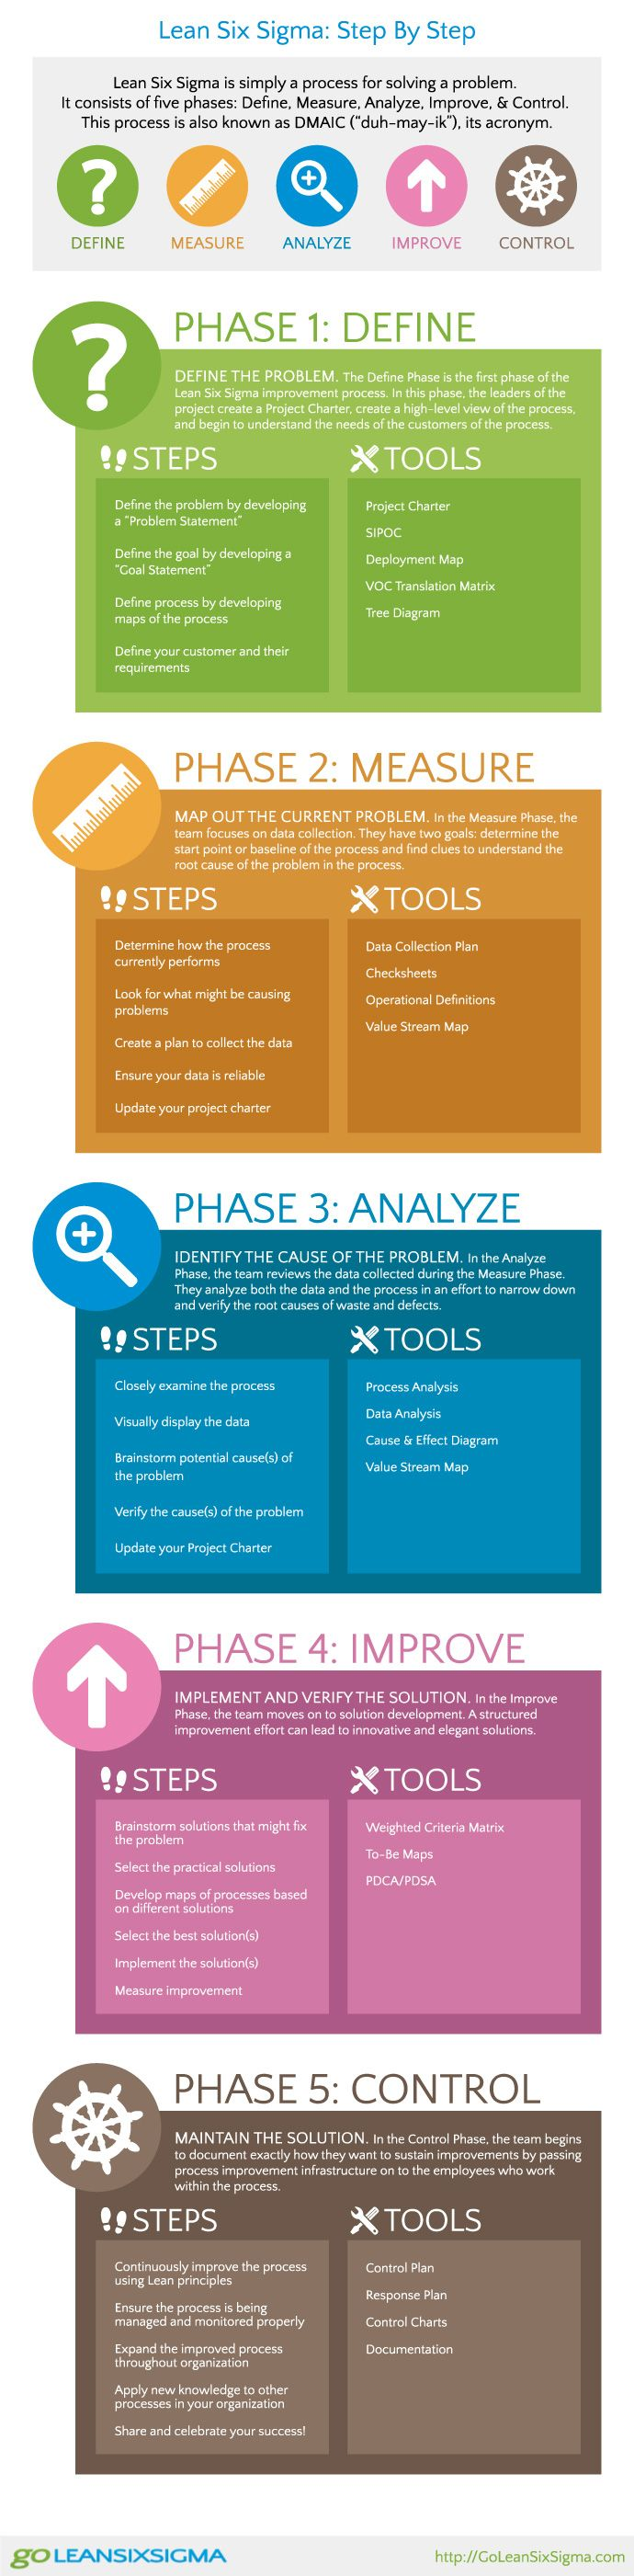 infographic lean six sigma step by step dmaic business